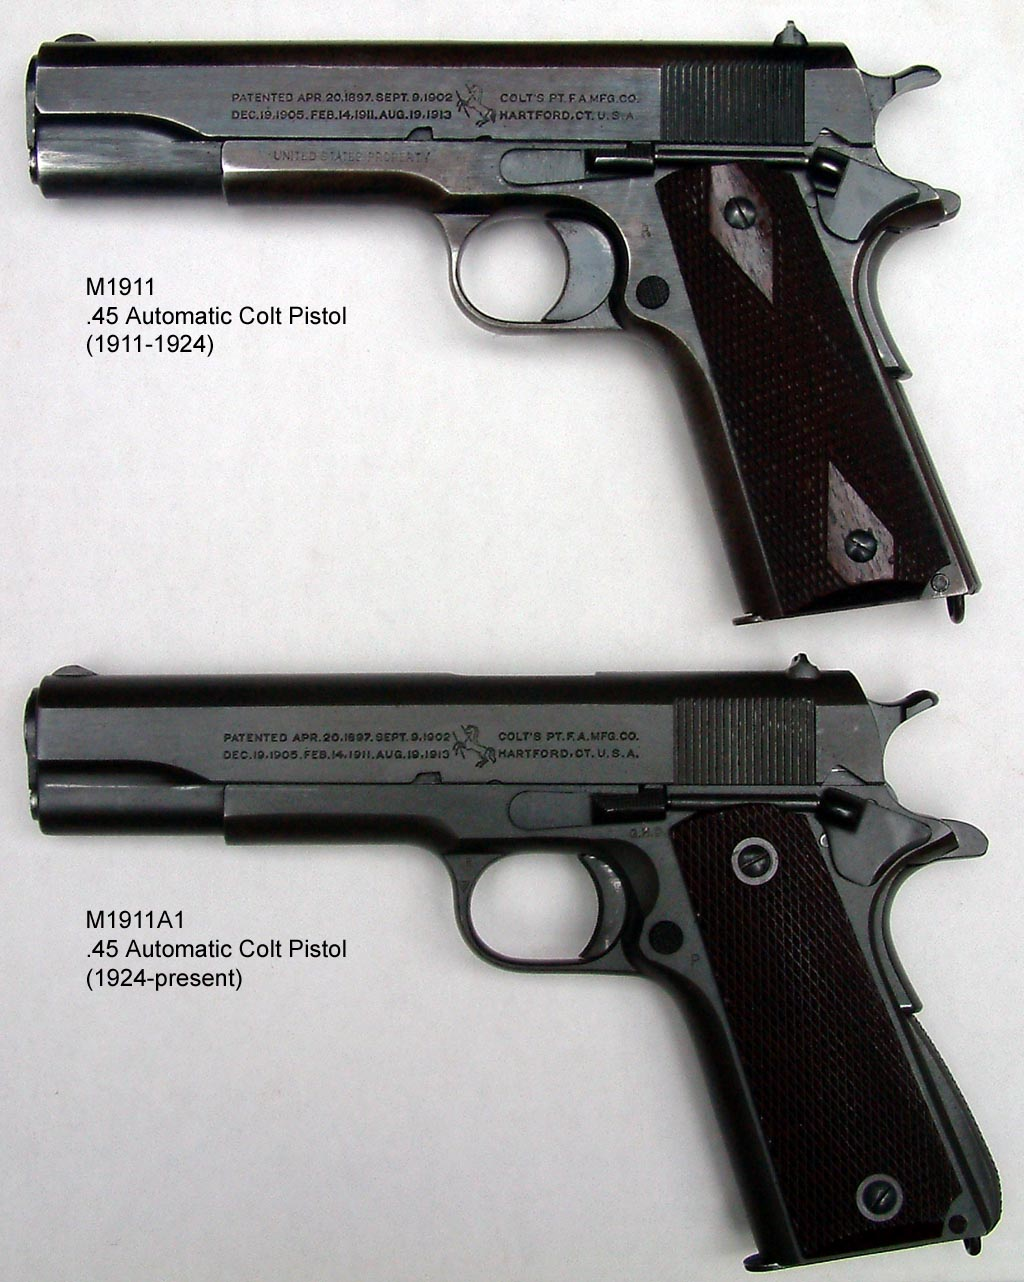 Need title for comparison paper for Semi-automated pistol and revovler?